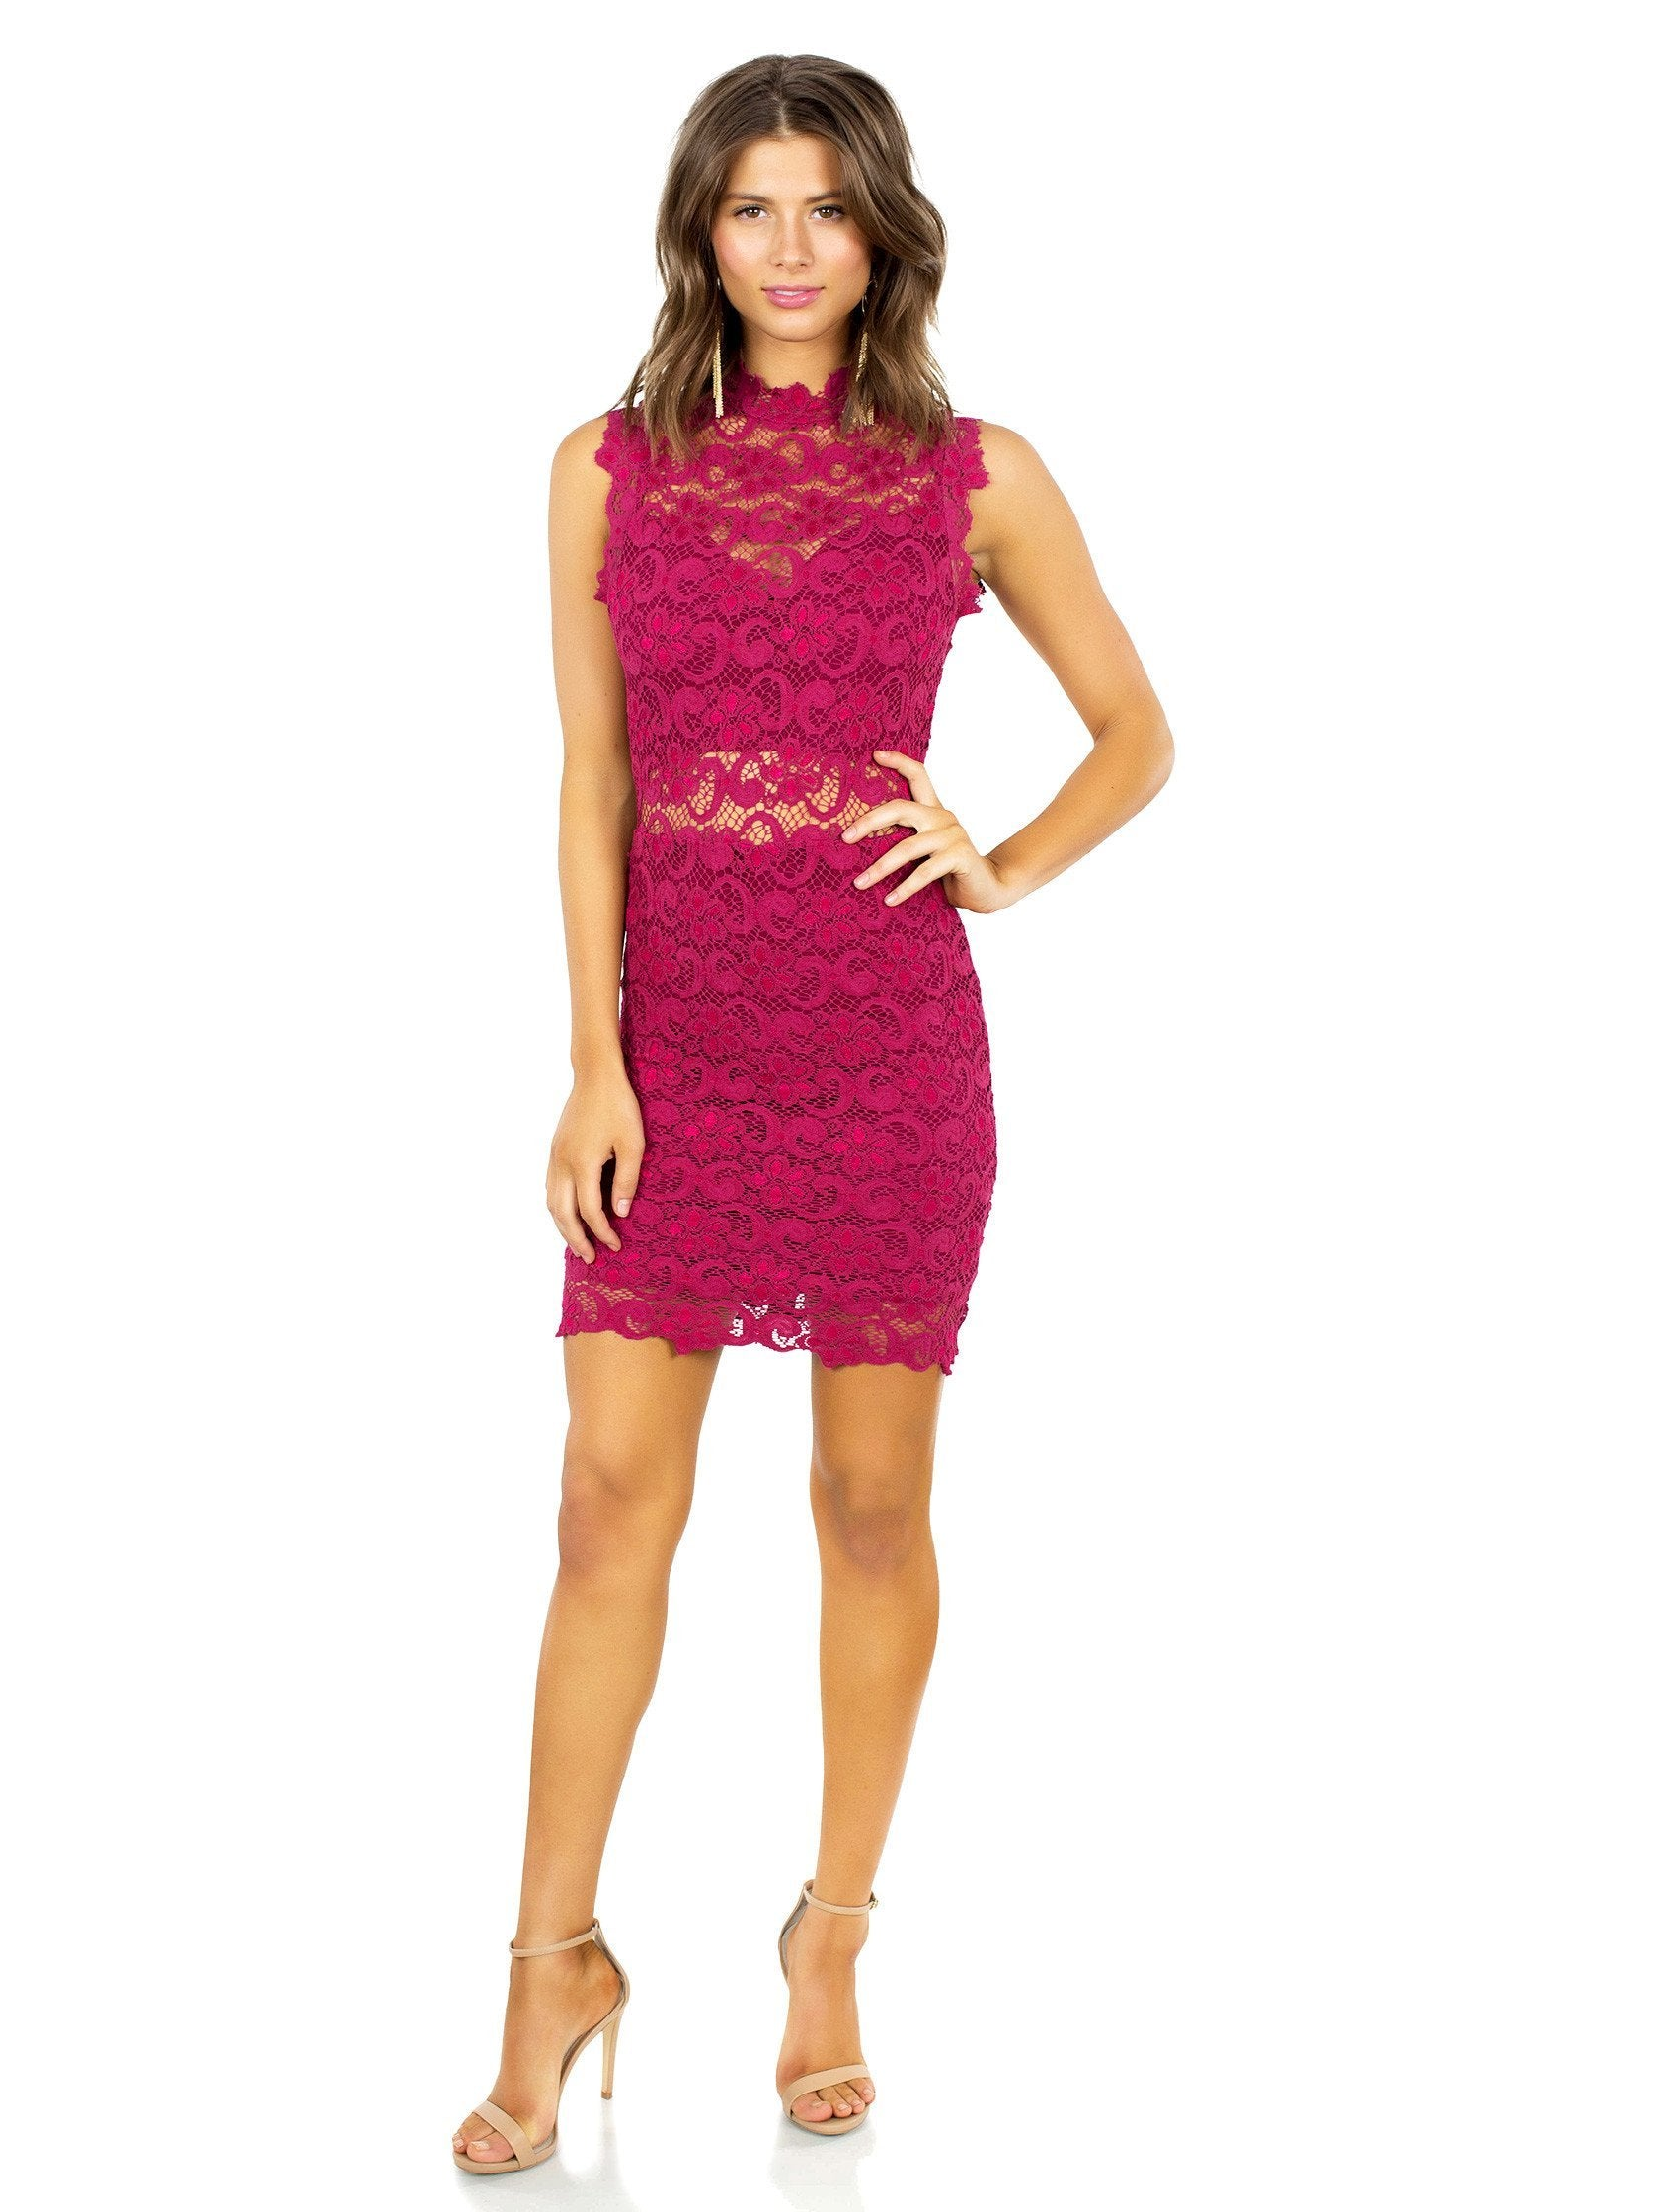 5a5605f70 nightcap-clothing-dixie-lace-cutout-mini-dress-FashionPass-1.jpg?v=1510338331